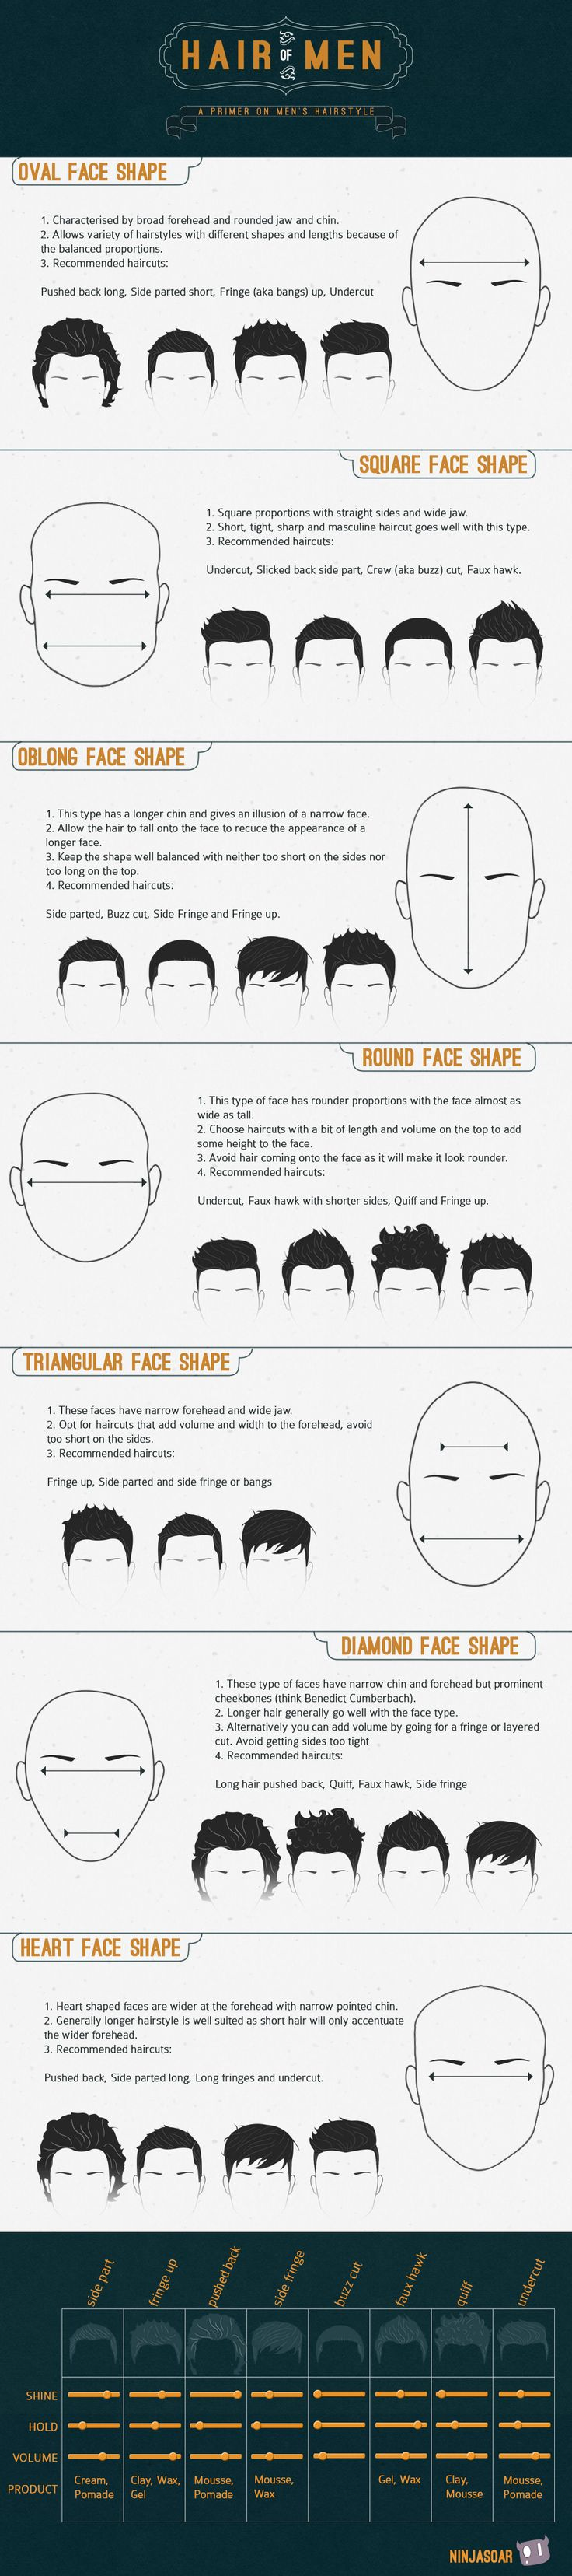 best 25+ mens hair 2015 ideas on pinterest | david beckham style